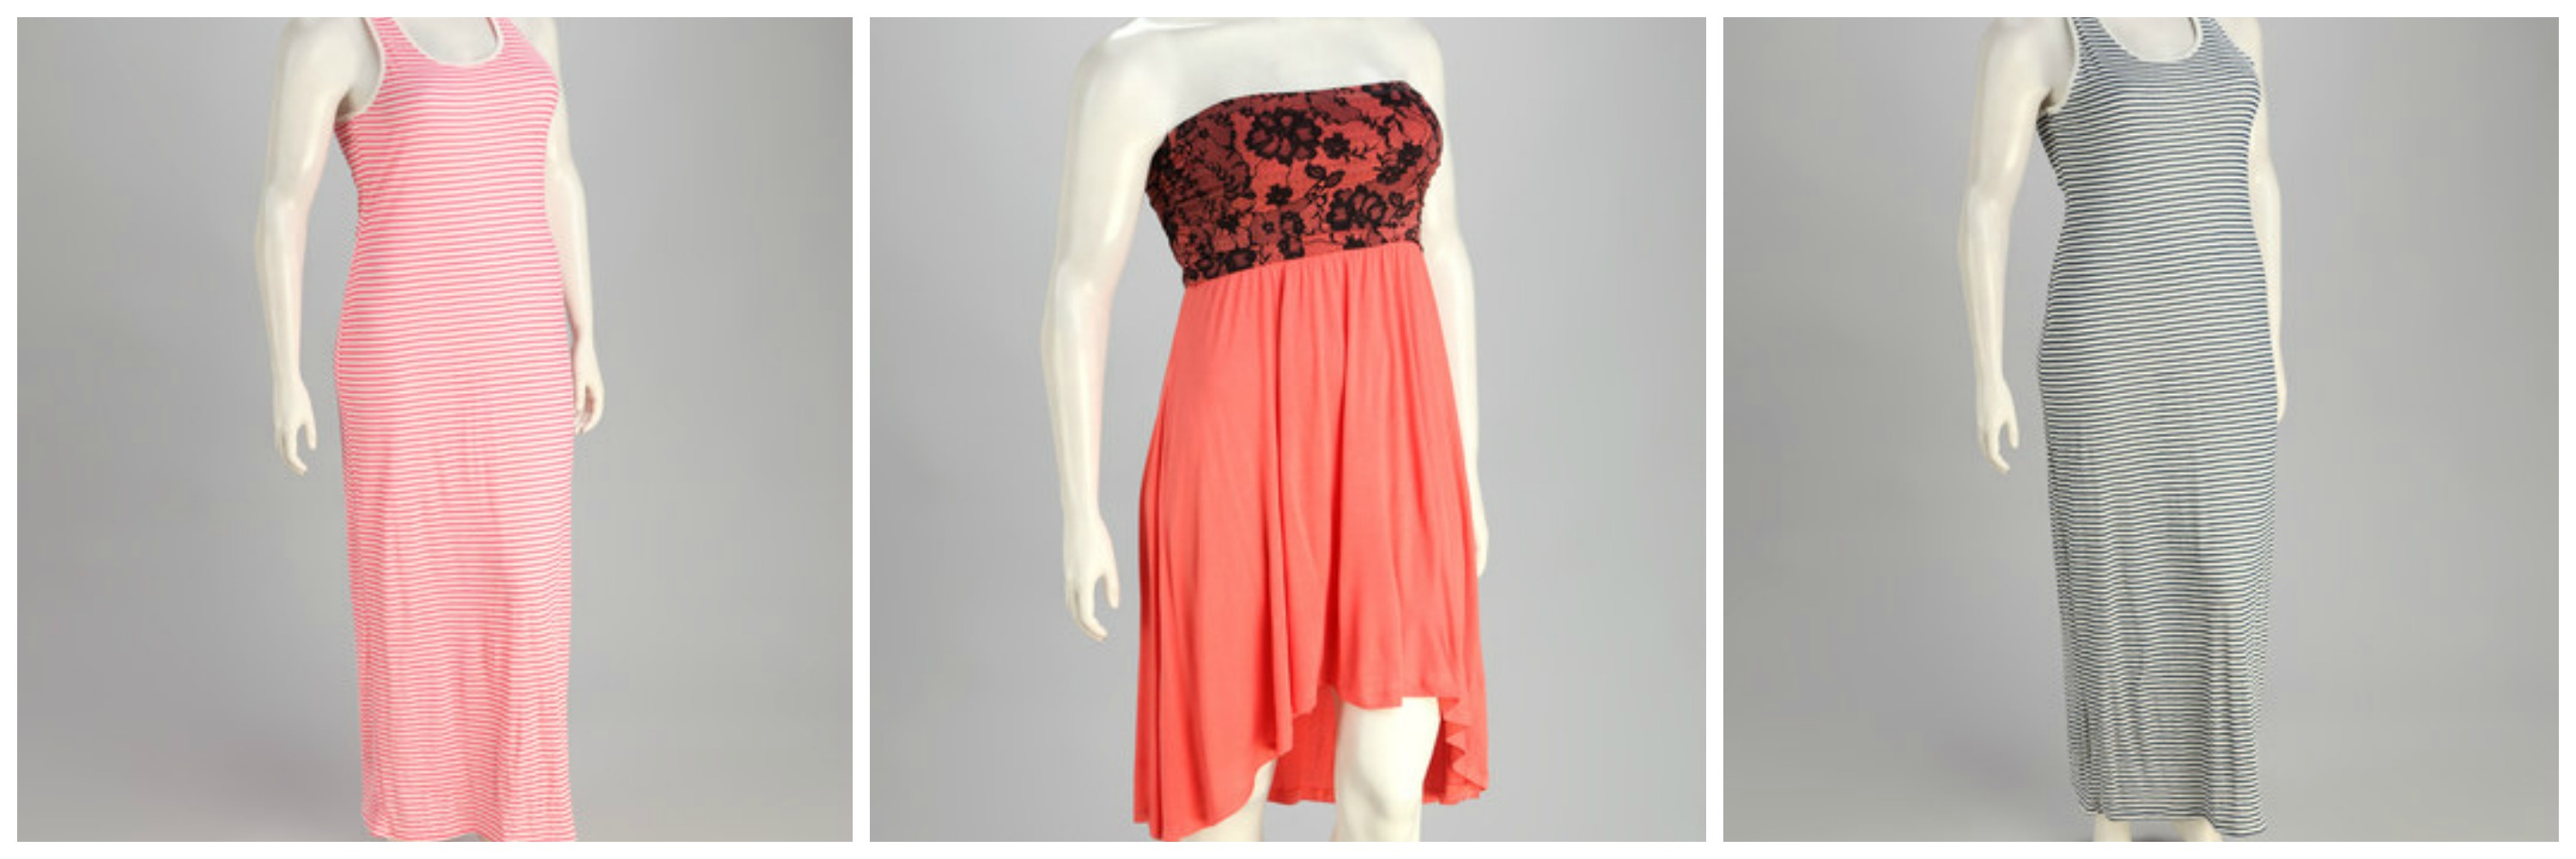 Zulily Plus Size Dresses